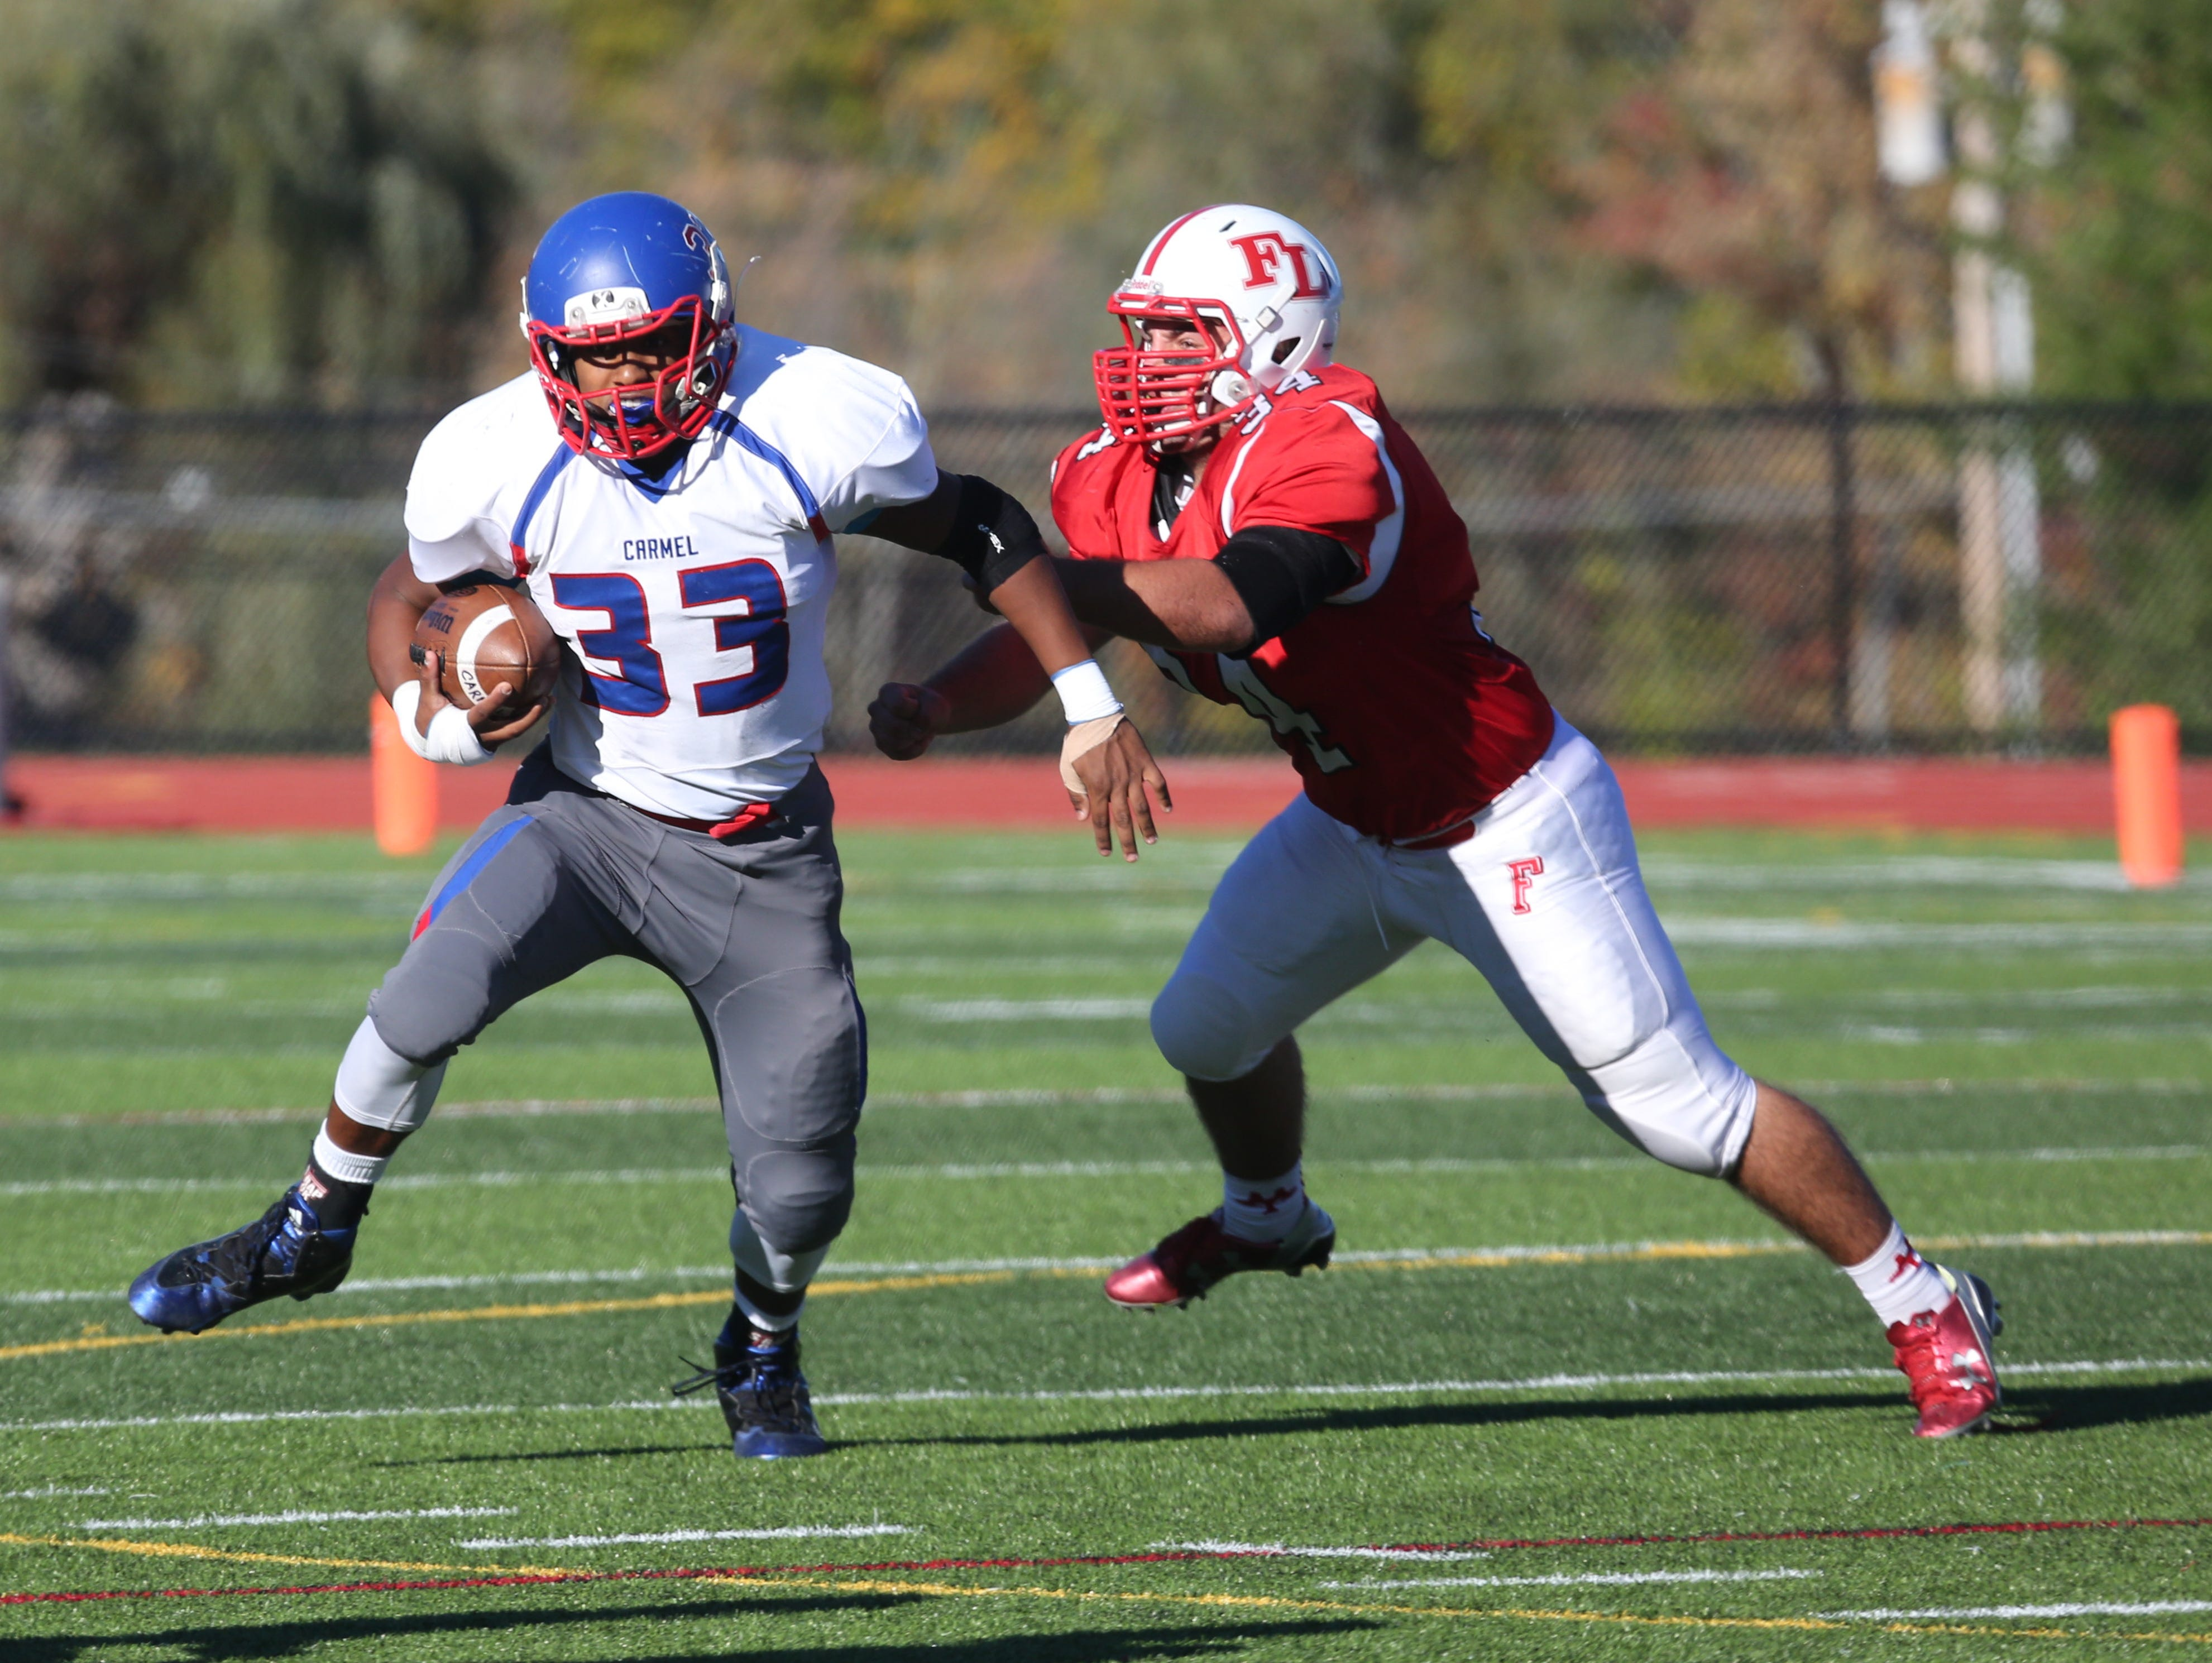 Carmel's John A. Morris III breaks away from Fox Lane defender Nick Cerutti during their game in Bedford, Oct. 10, 2105.